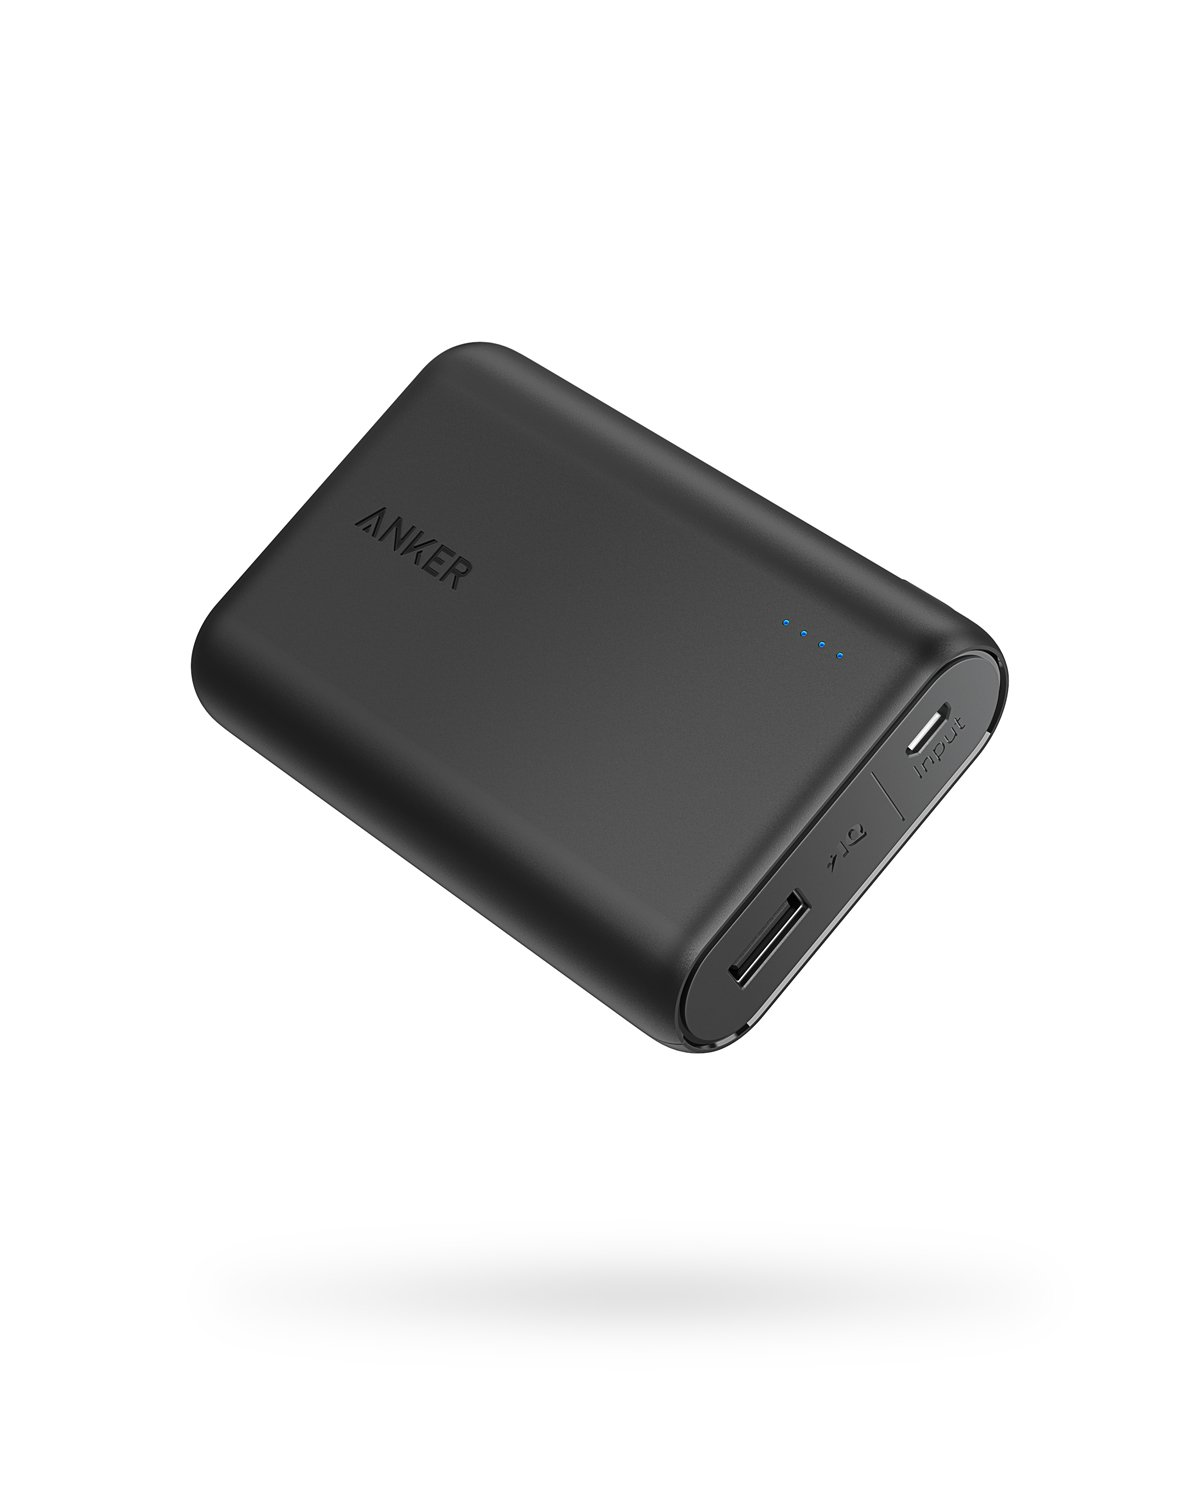 Anker PowerCore 10000 Portable Charger, One Of The Smallest And Lightest 10000mAh External Battery, Ultra-Compact High-Speed-Charging-Technology Power Bank For IPhone, Samsung Galaxy And More